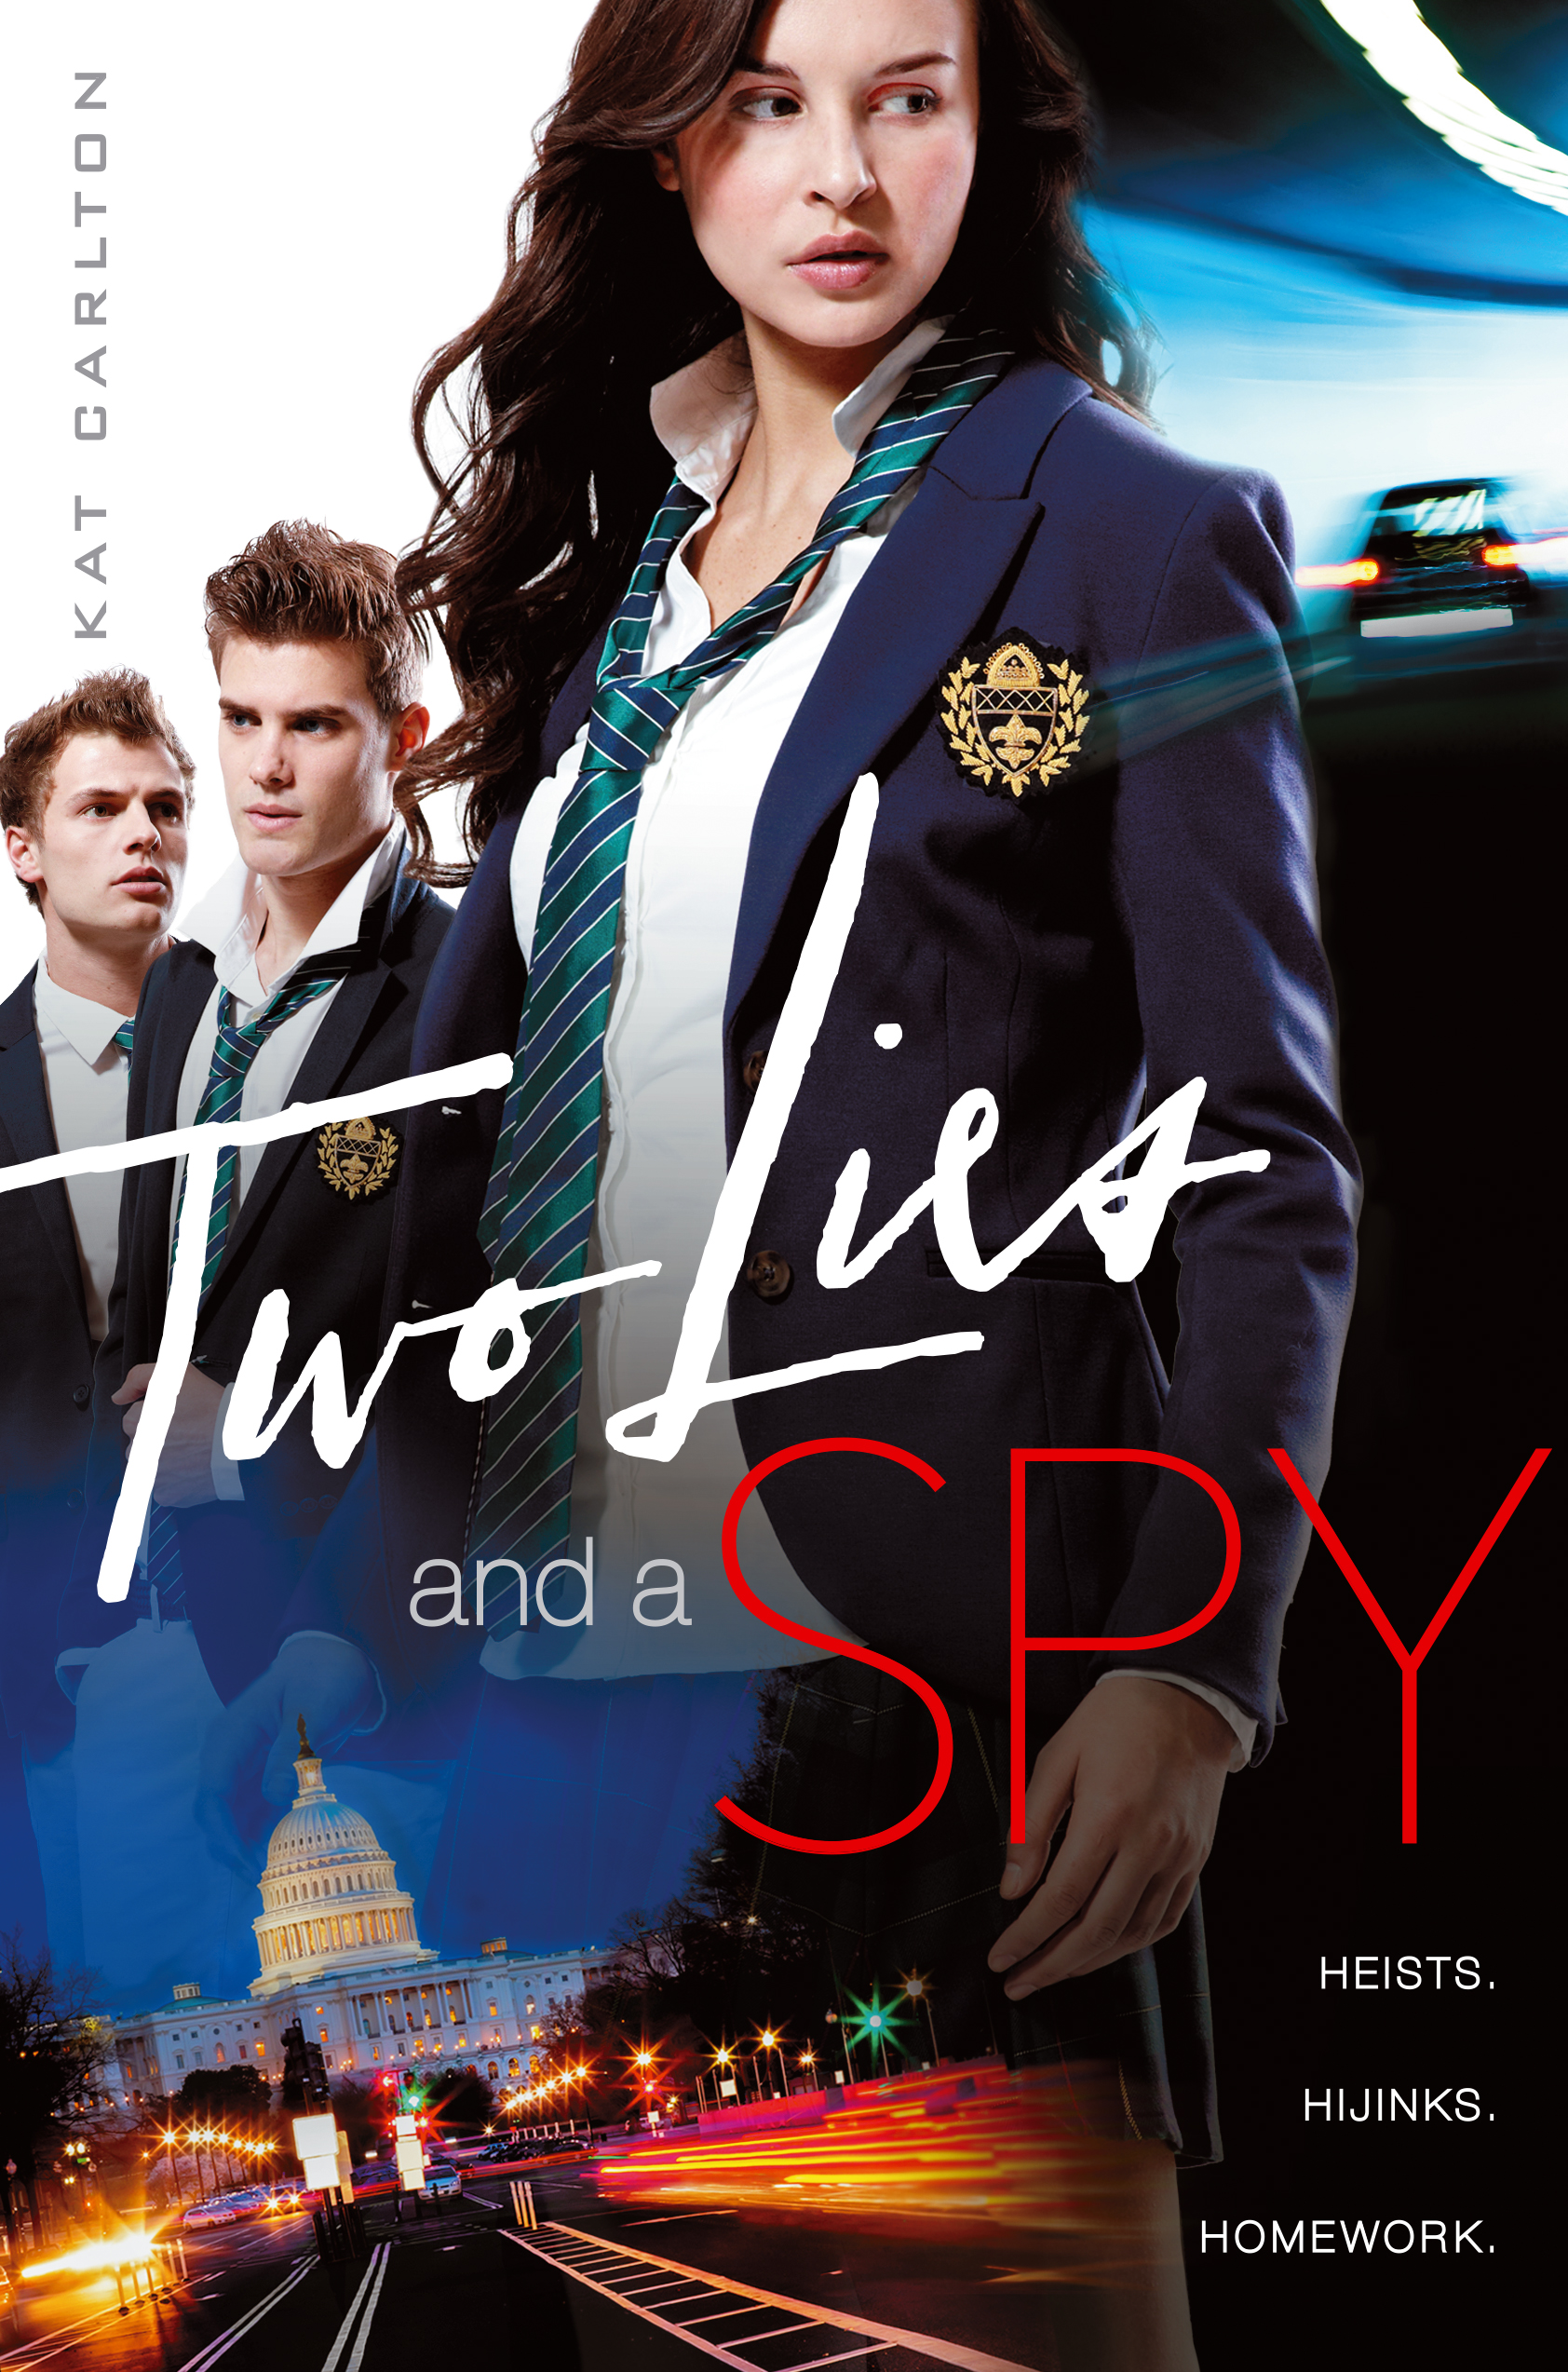 Two Lies and a Spy book cover